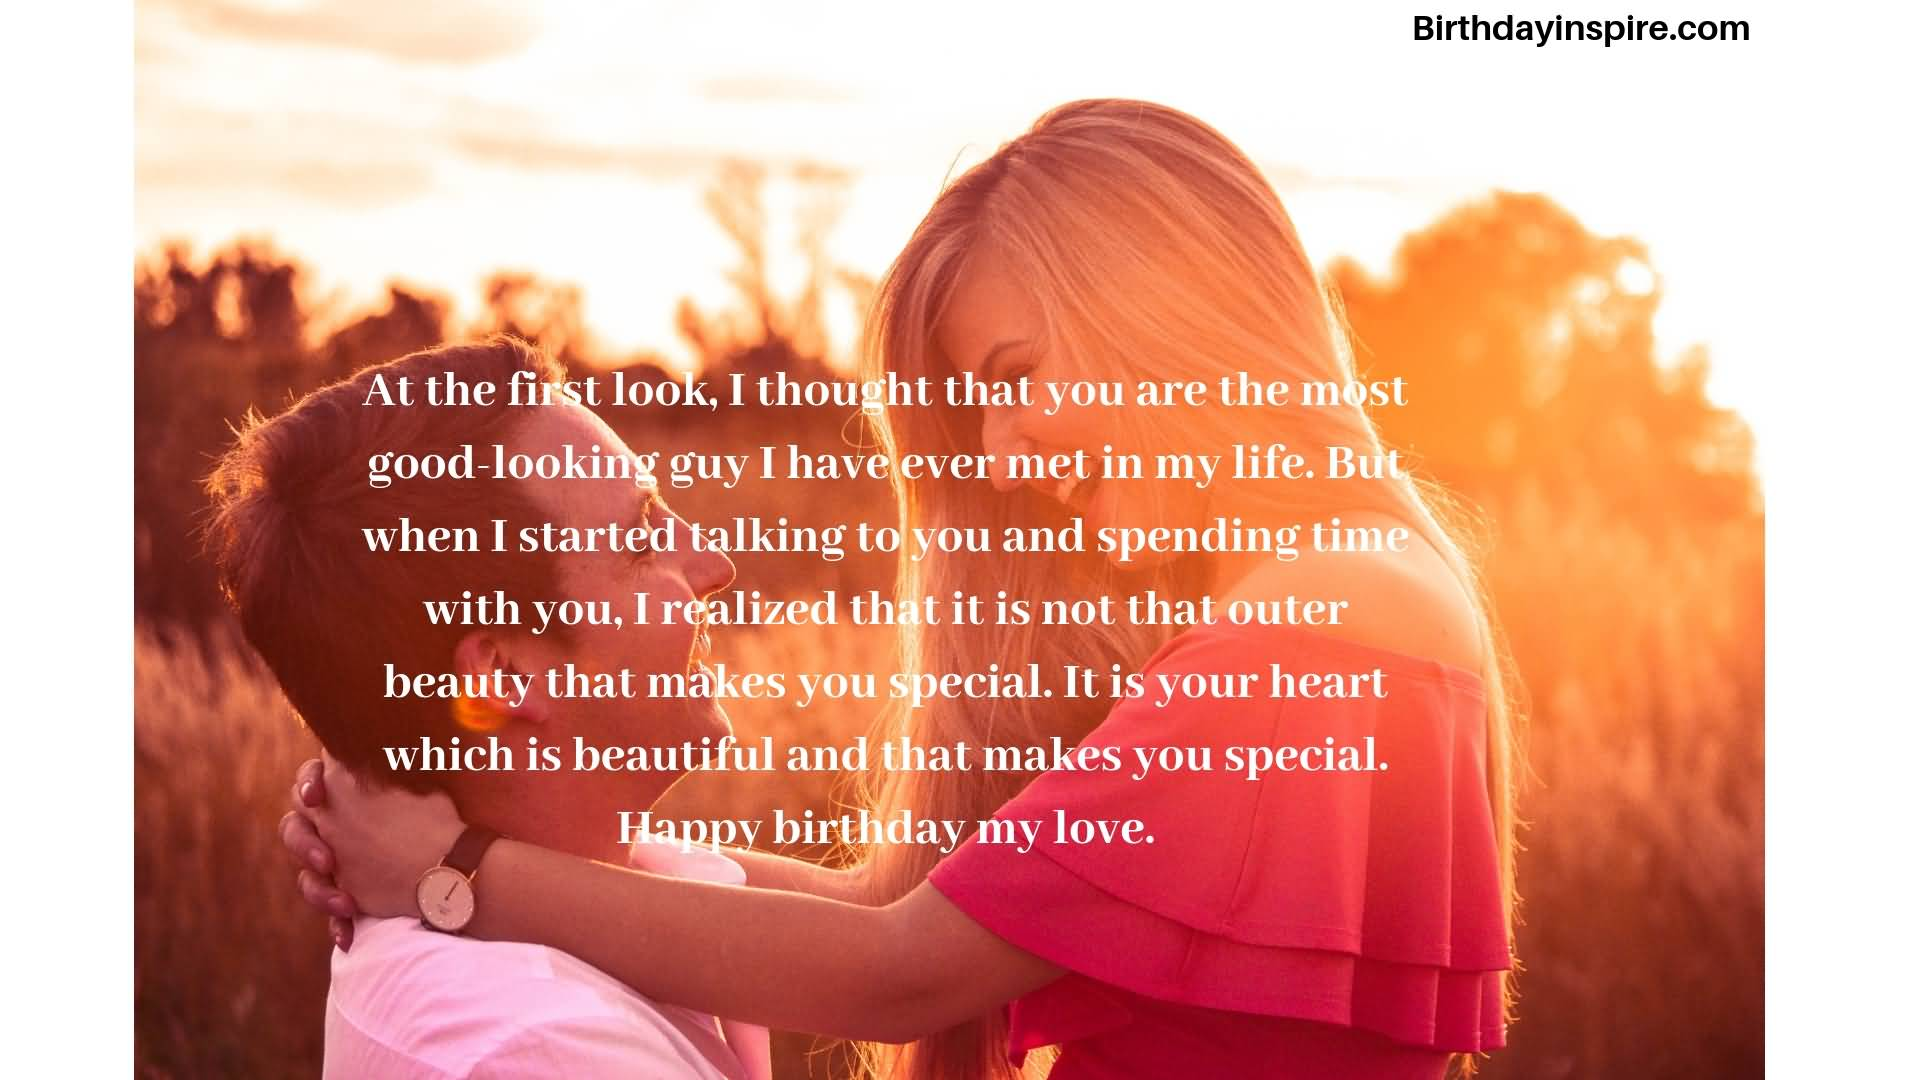 At the first look, I thought that you are the most for dear Boyfriend birthday messages wish from girlfriend